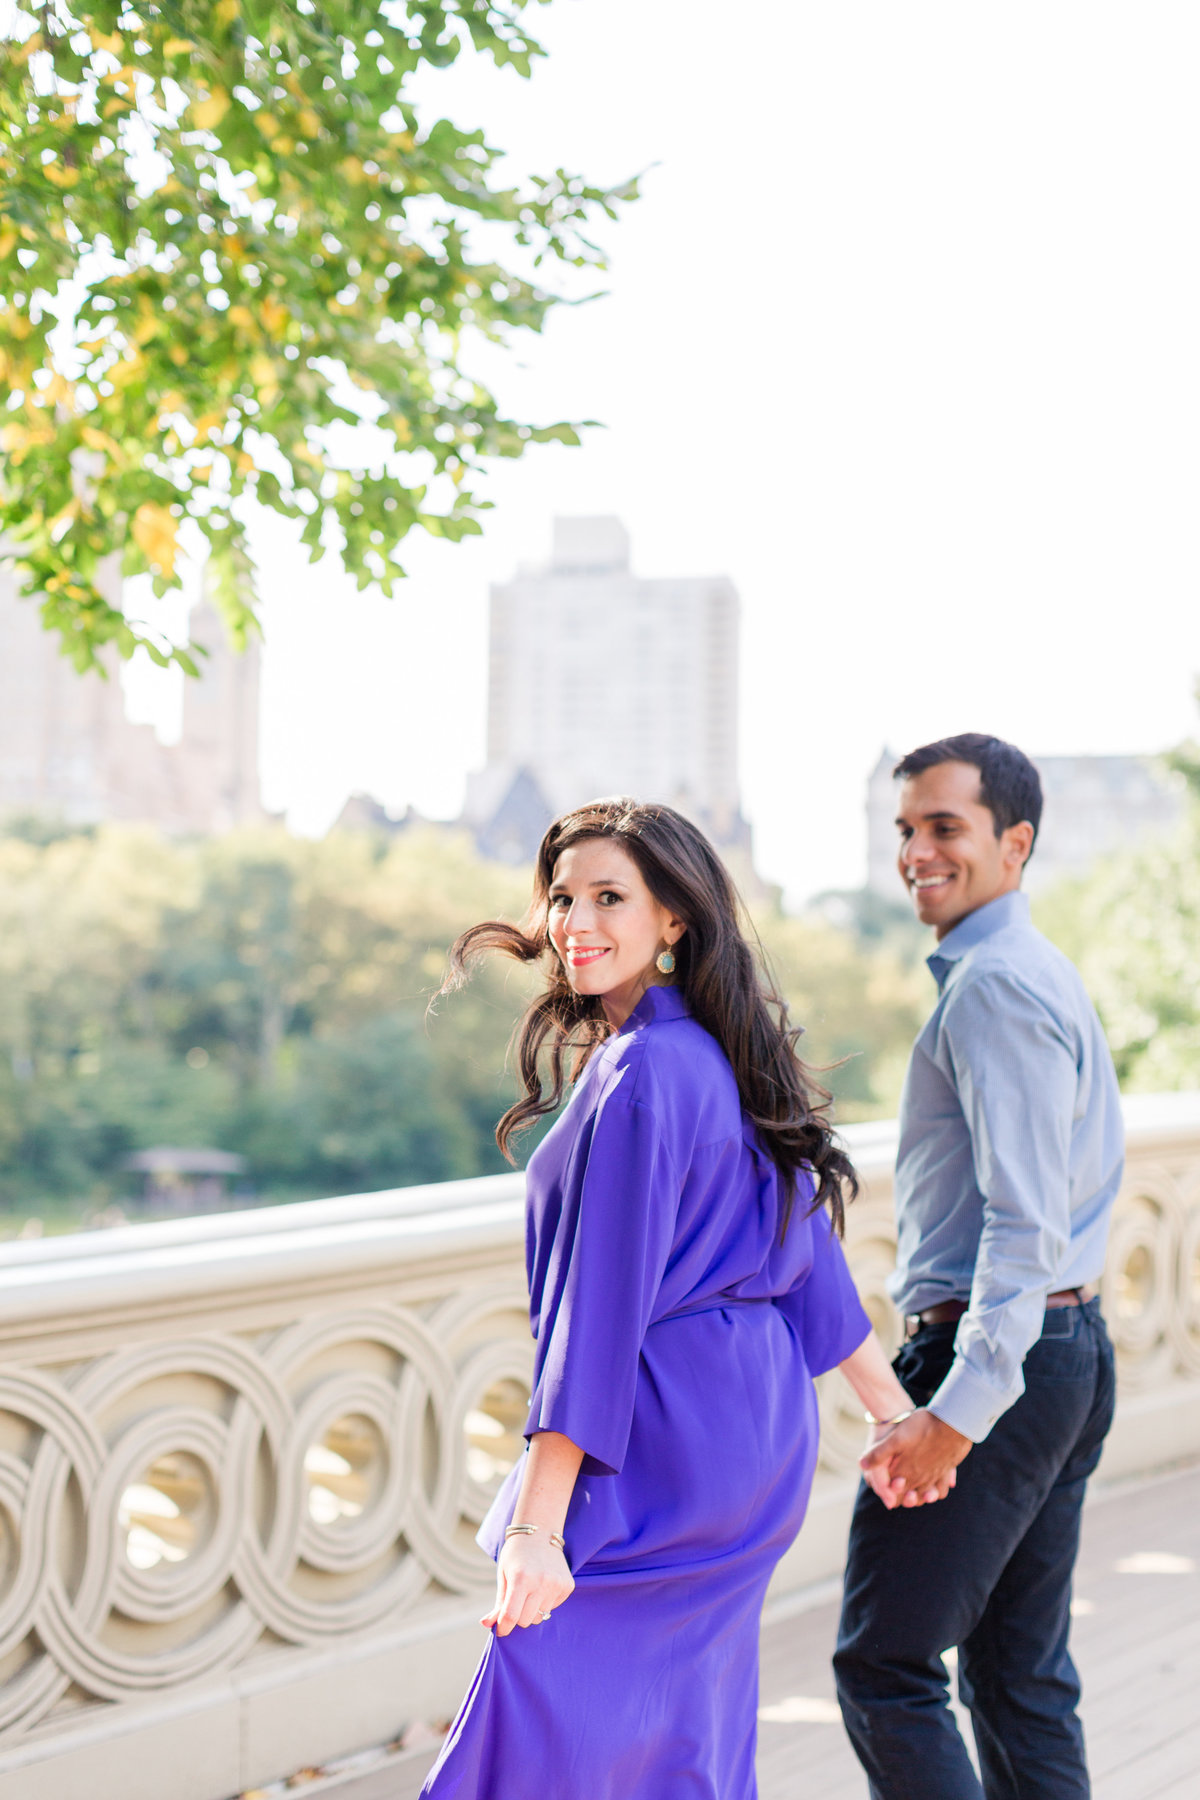 Lauren-Kearns-Central-Park-Engagement.jpg14